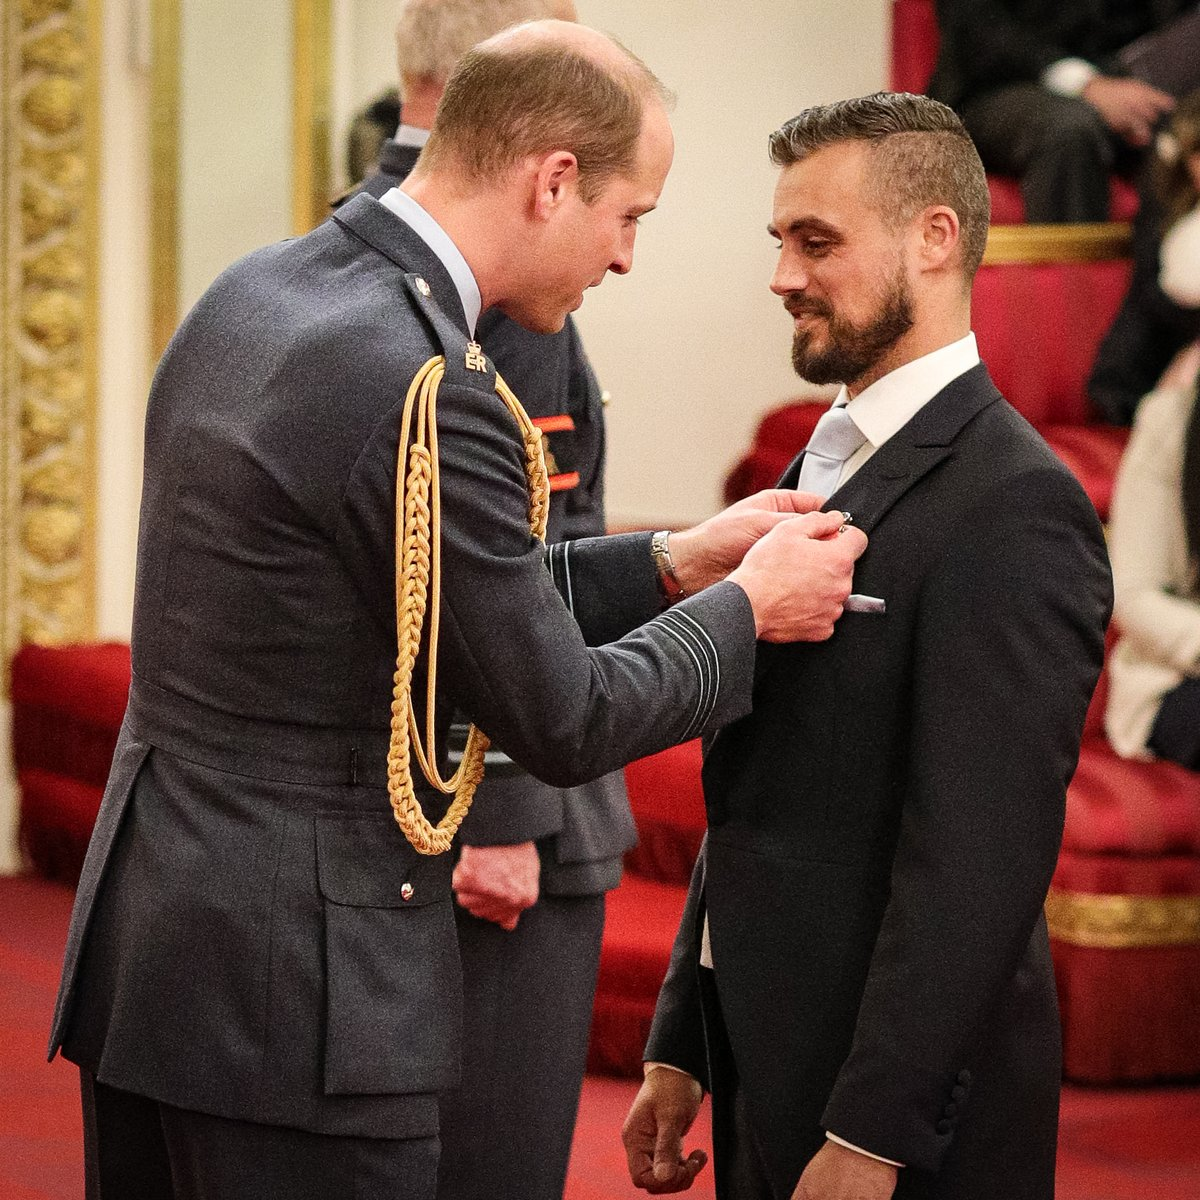 Born with Cystic Fibrosis, @JoshLJ24 was given a 10% chance of surviving his first night. Growing up, he was told he wouldn't make it to 30. At 31, Josh Llewellyn-Jones OBE 🎖️ is now a World Record Breaker and fundraiser of over £800,000 for various charities.